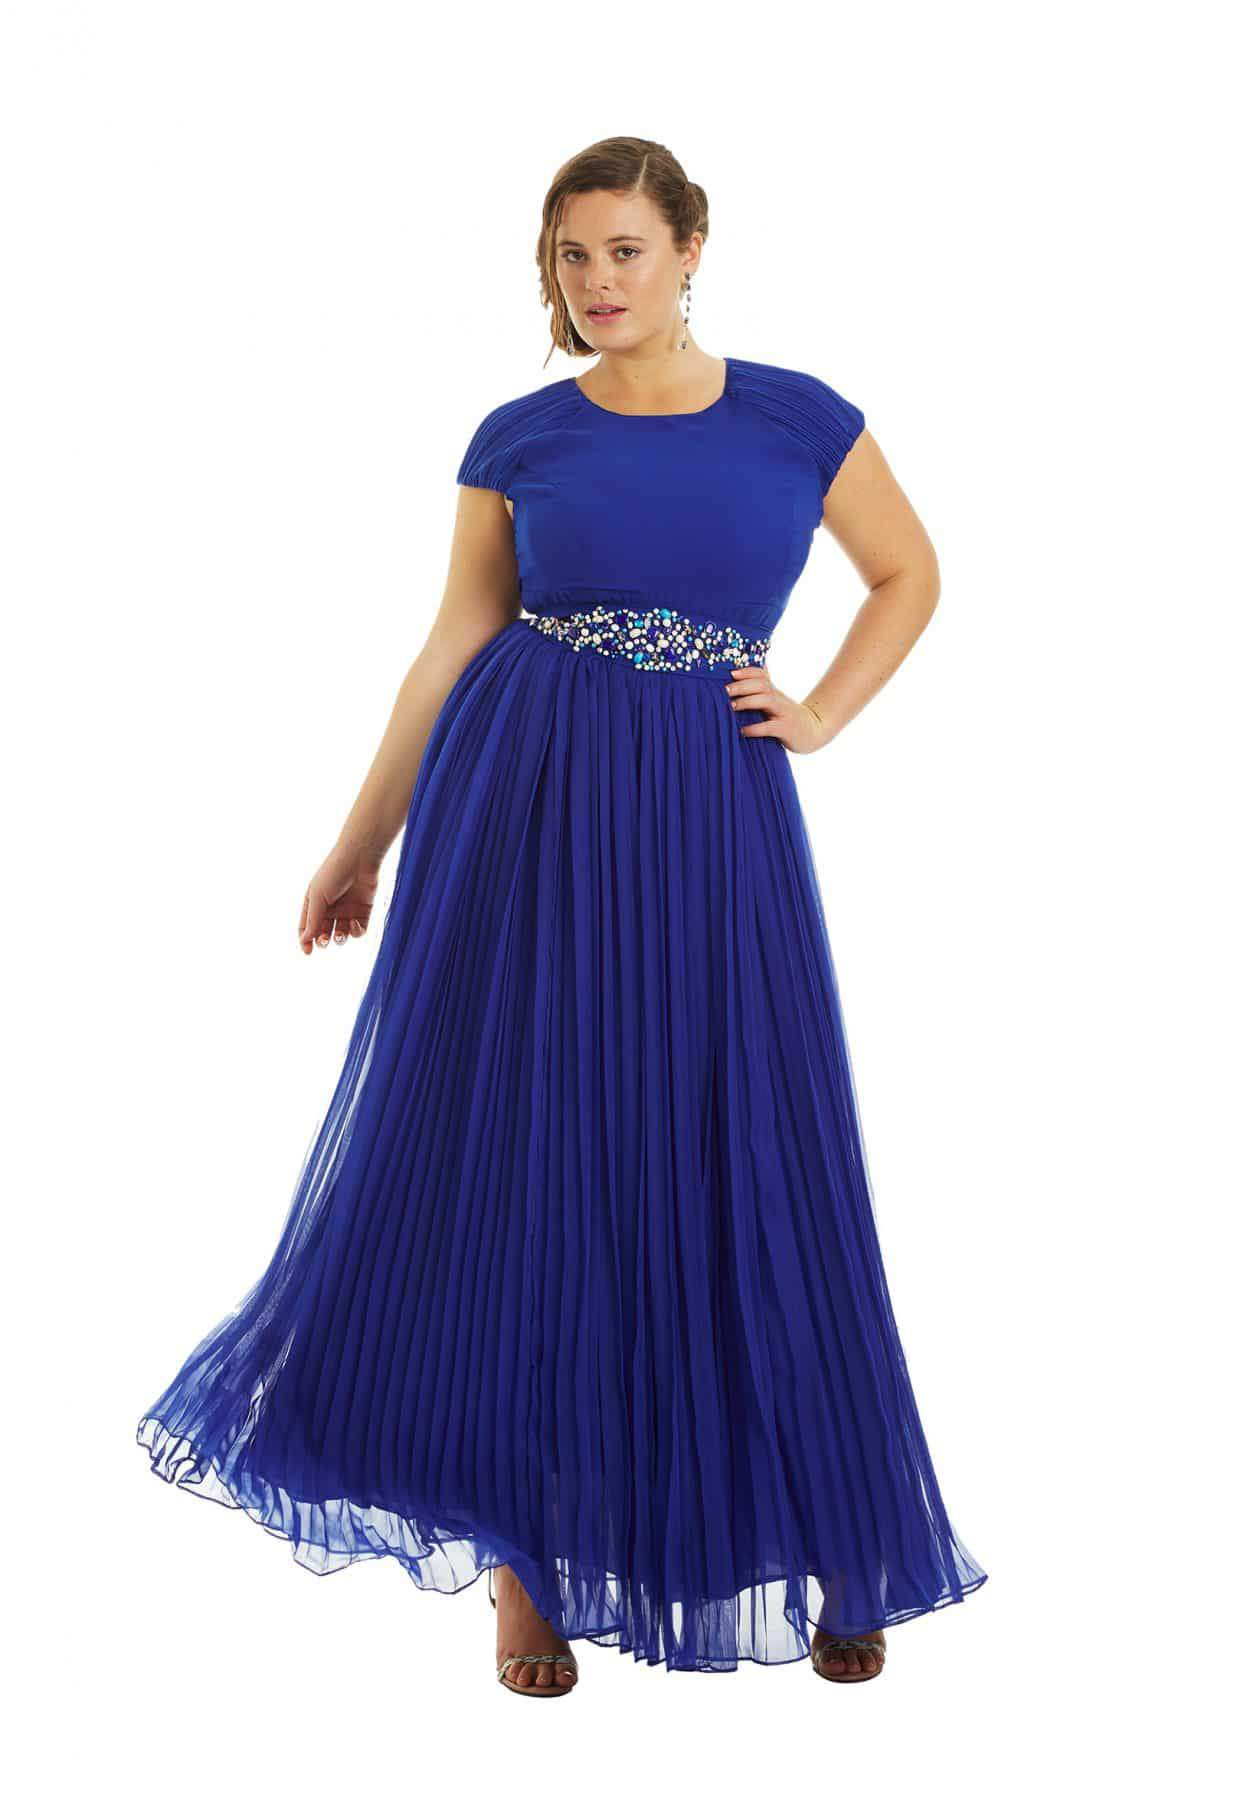 Dorothy Plus Size Prom Dress